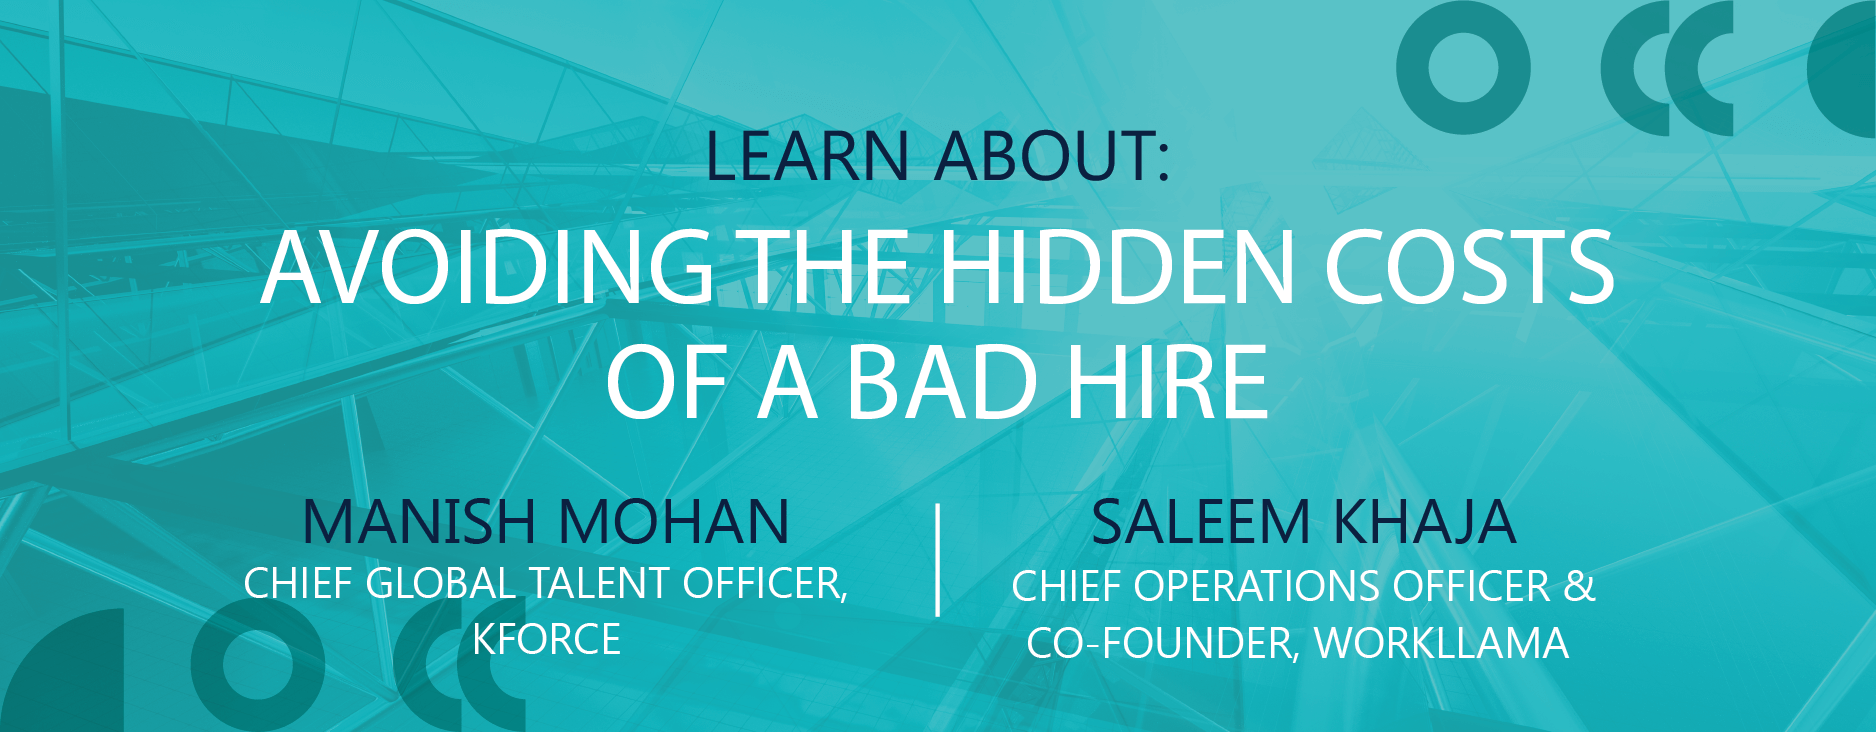 Avoiding the Cost of a Bad Hire